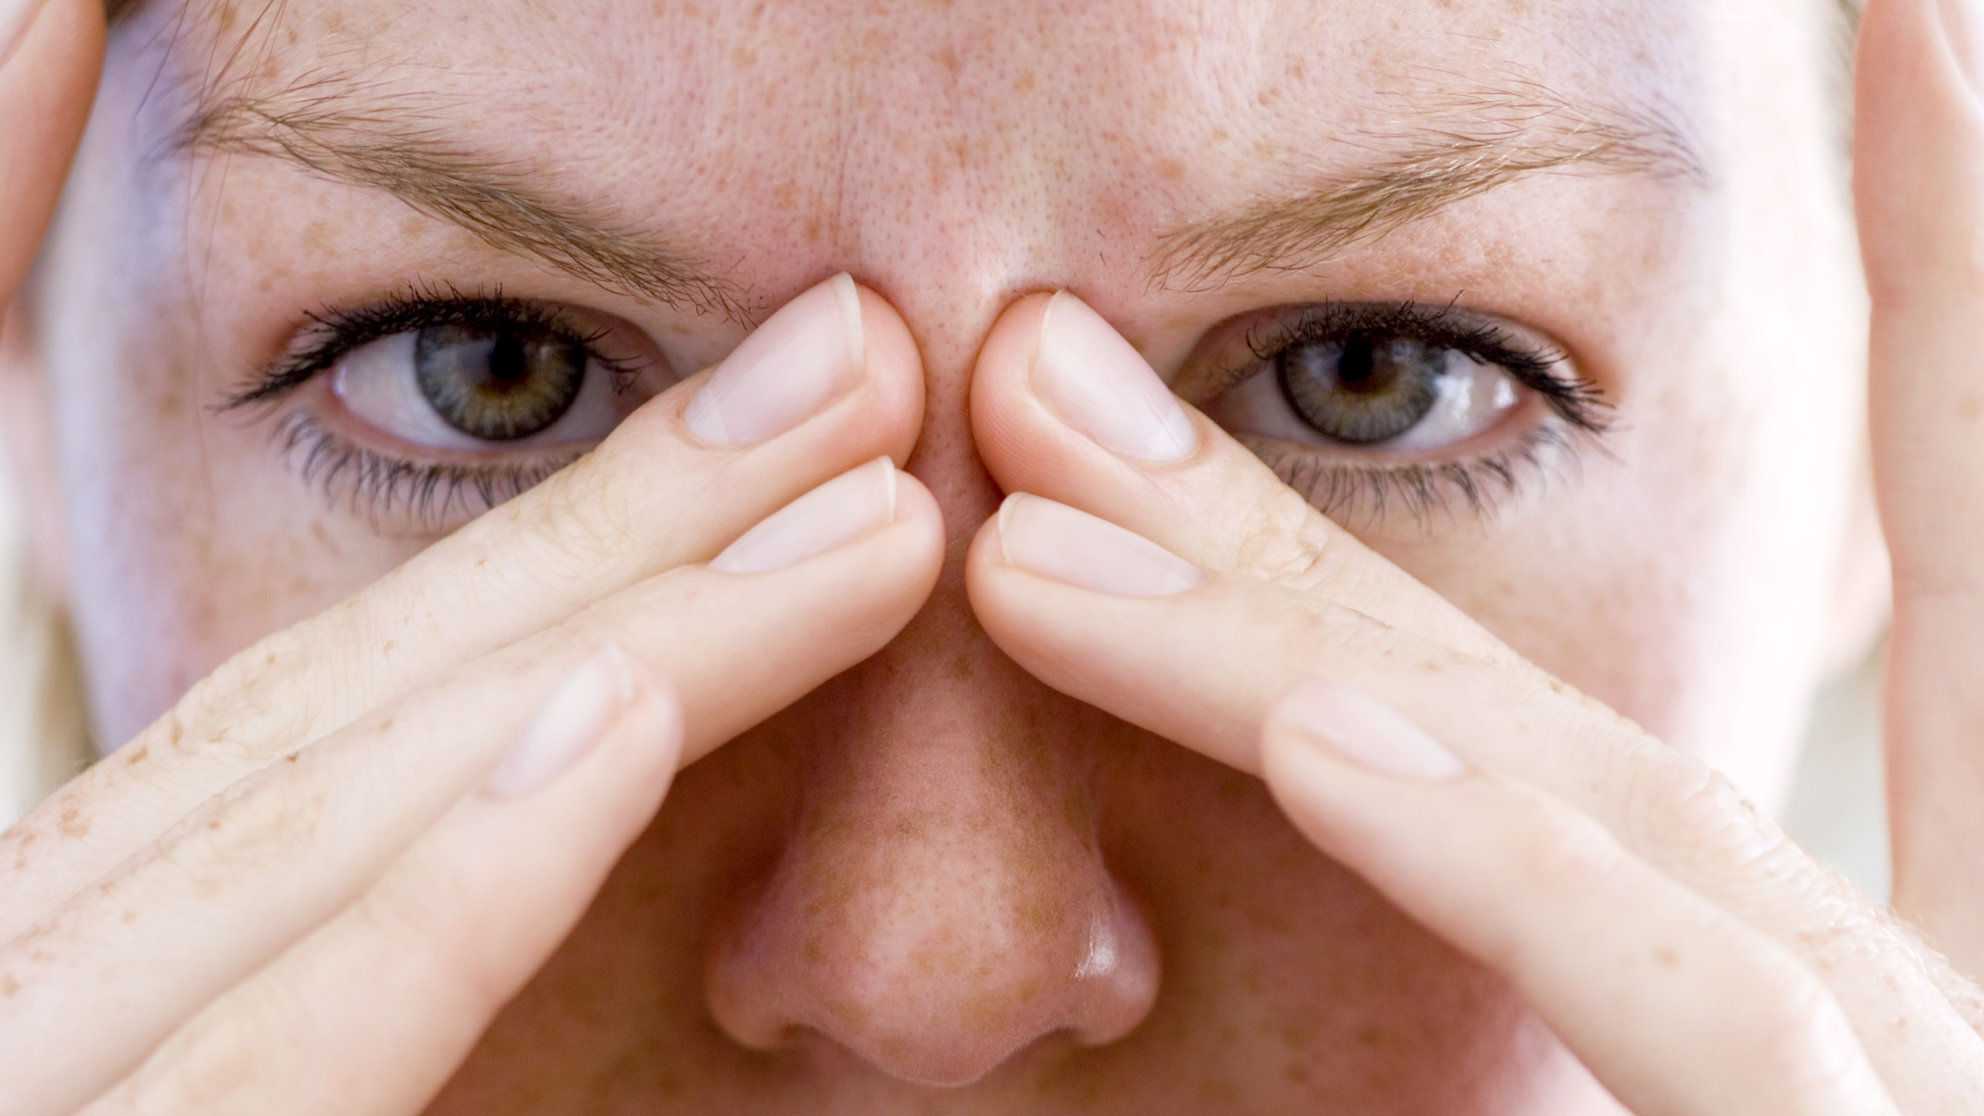 New Vision Problems Are Common After LASIK, Says Study